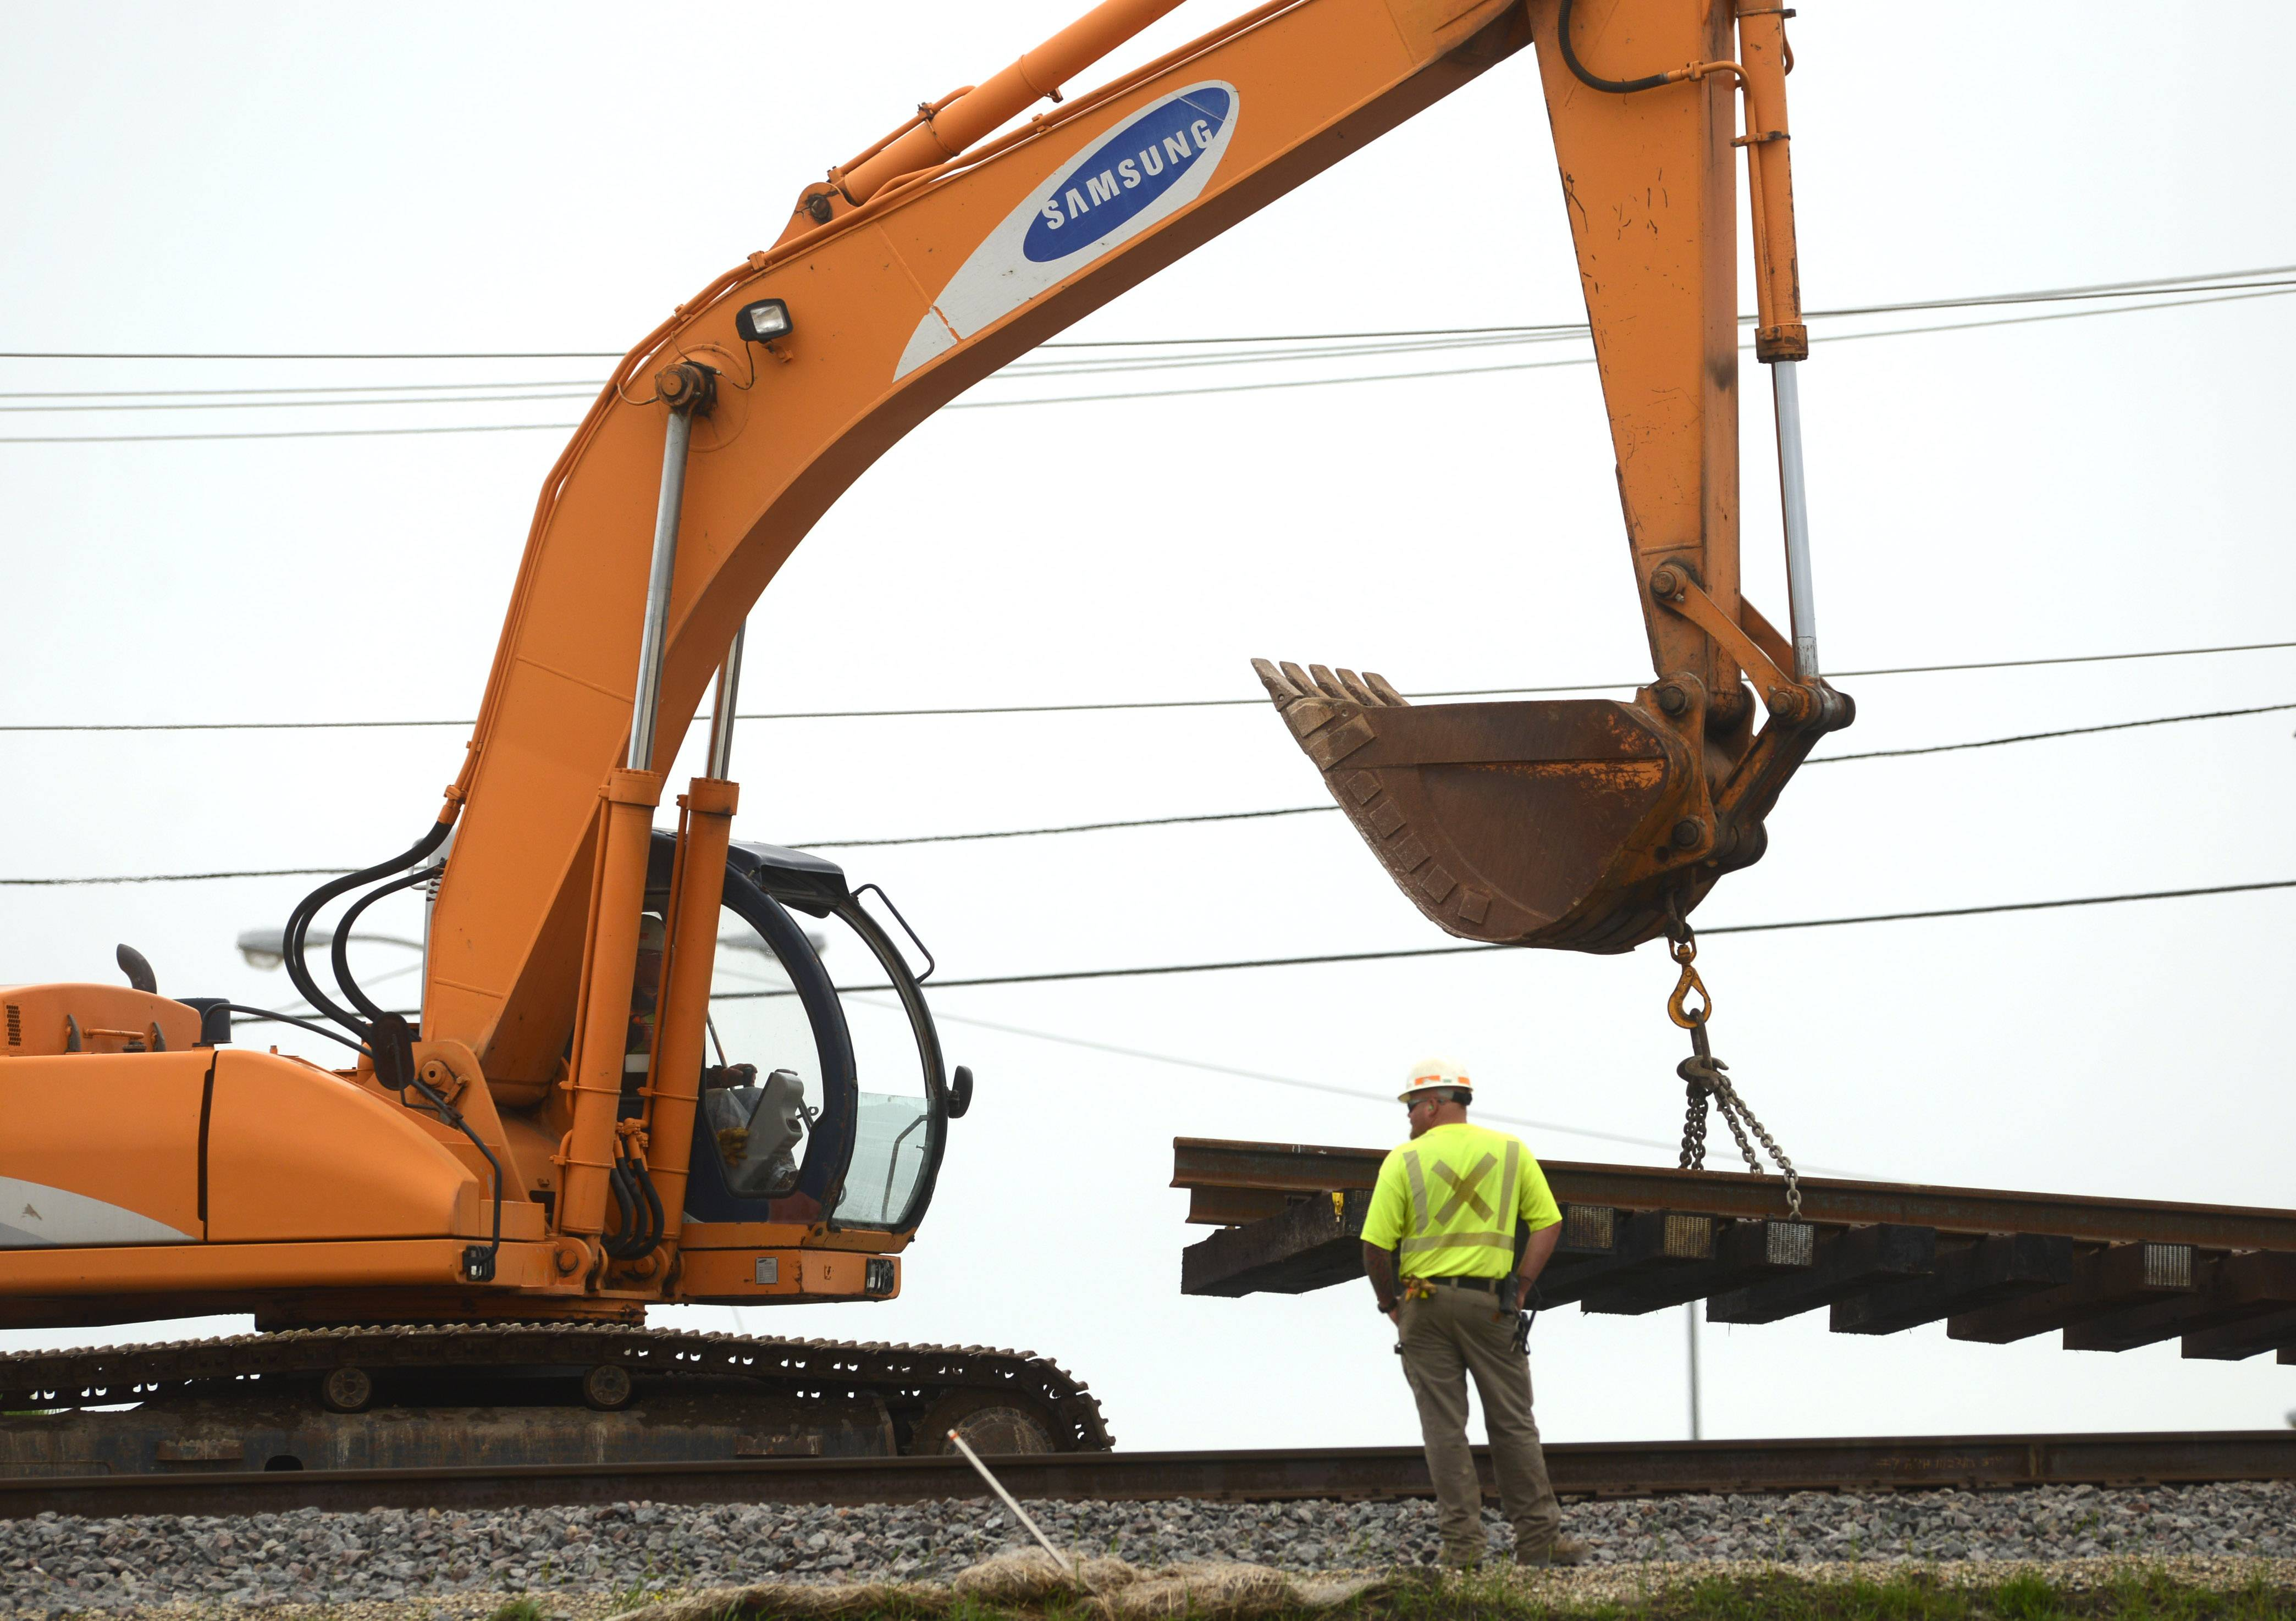 Crews move sections of train track Wednesday along Route 83 just north of Rollins Road in Round Lake Beach. Rollins Road will be closed for about three days beginning Friday for track construction.